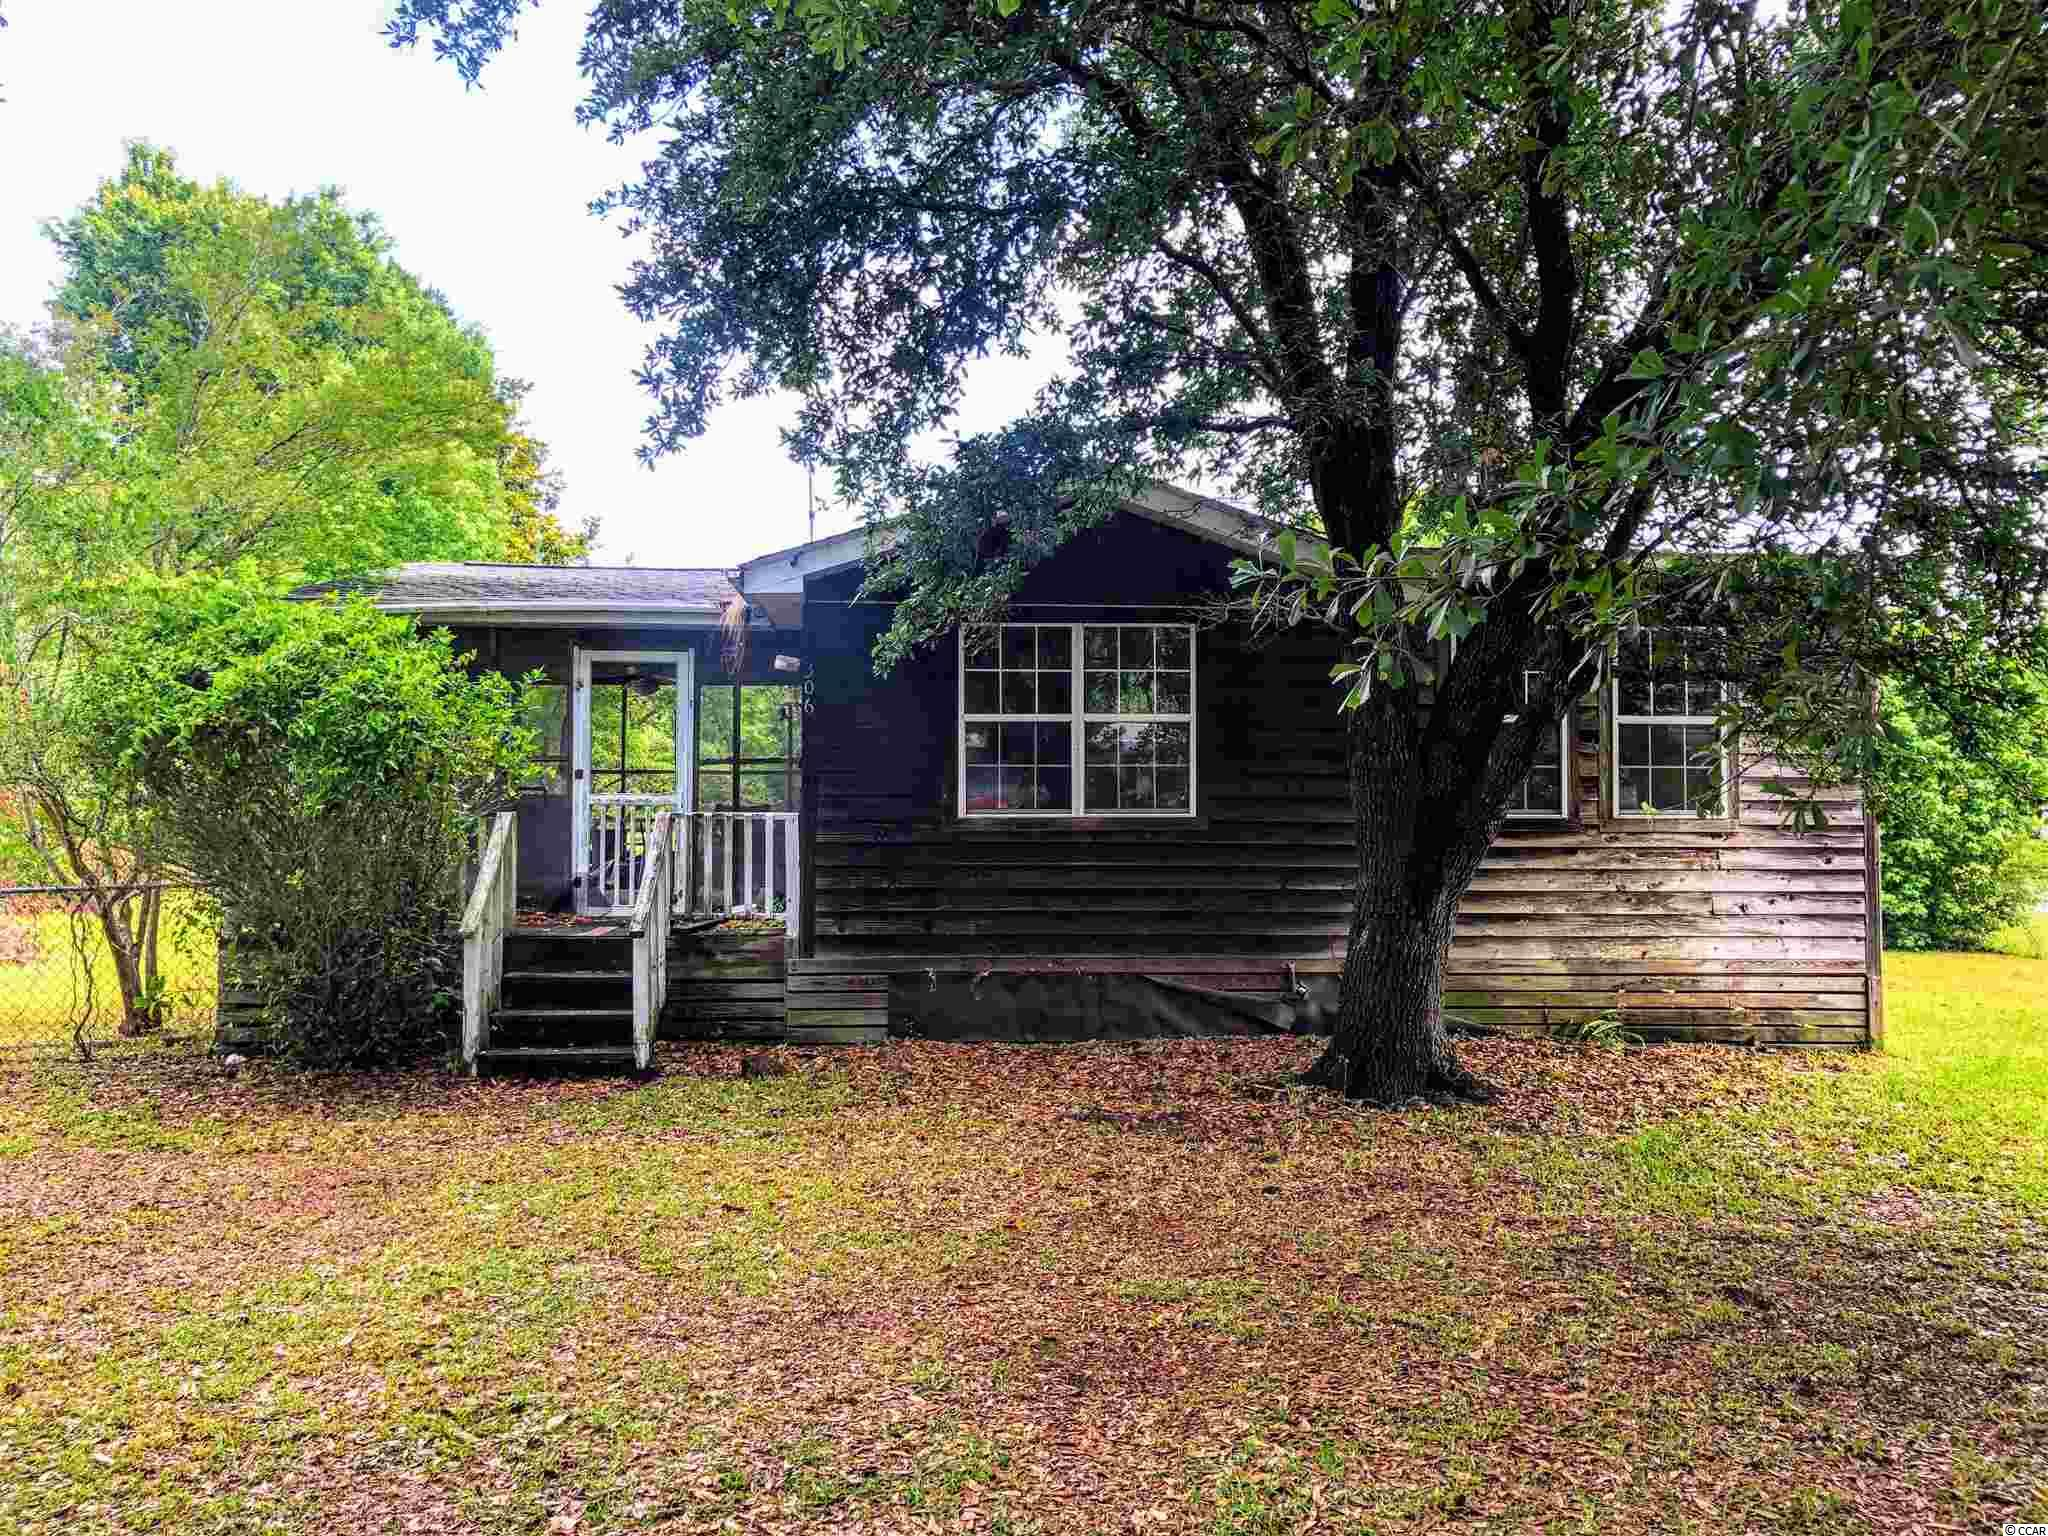 If you are looking for a fixer upper or want to build your dream home in the highly desirable area of Pawleys Island, then look no further! Just minutes from the beach, this 2 bed, 2 bath manufactured home is ready to be brought back to life. Sitting on 0.34 acres, the possibilities of what can be achieved are endless. Home is being sold as-is and features a fenced in yard, large car port, 2 sheds and best of all, NO HOA. The location is perfect, with many fantastic restaurants, shopping, grocery stores and much much more. All measurements and square footage are approximate and not guaranteed. Buyer responsible for verification. Schedule your showing today!